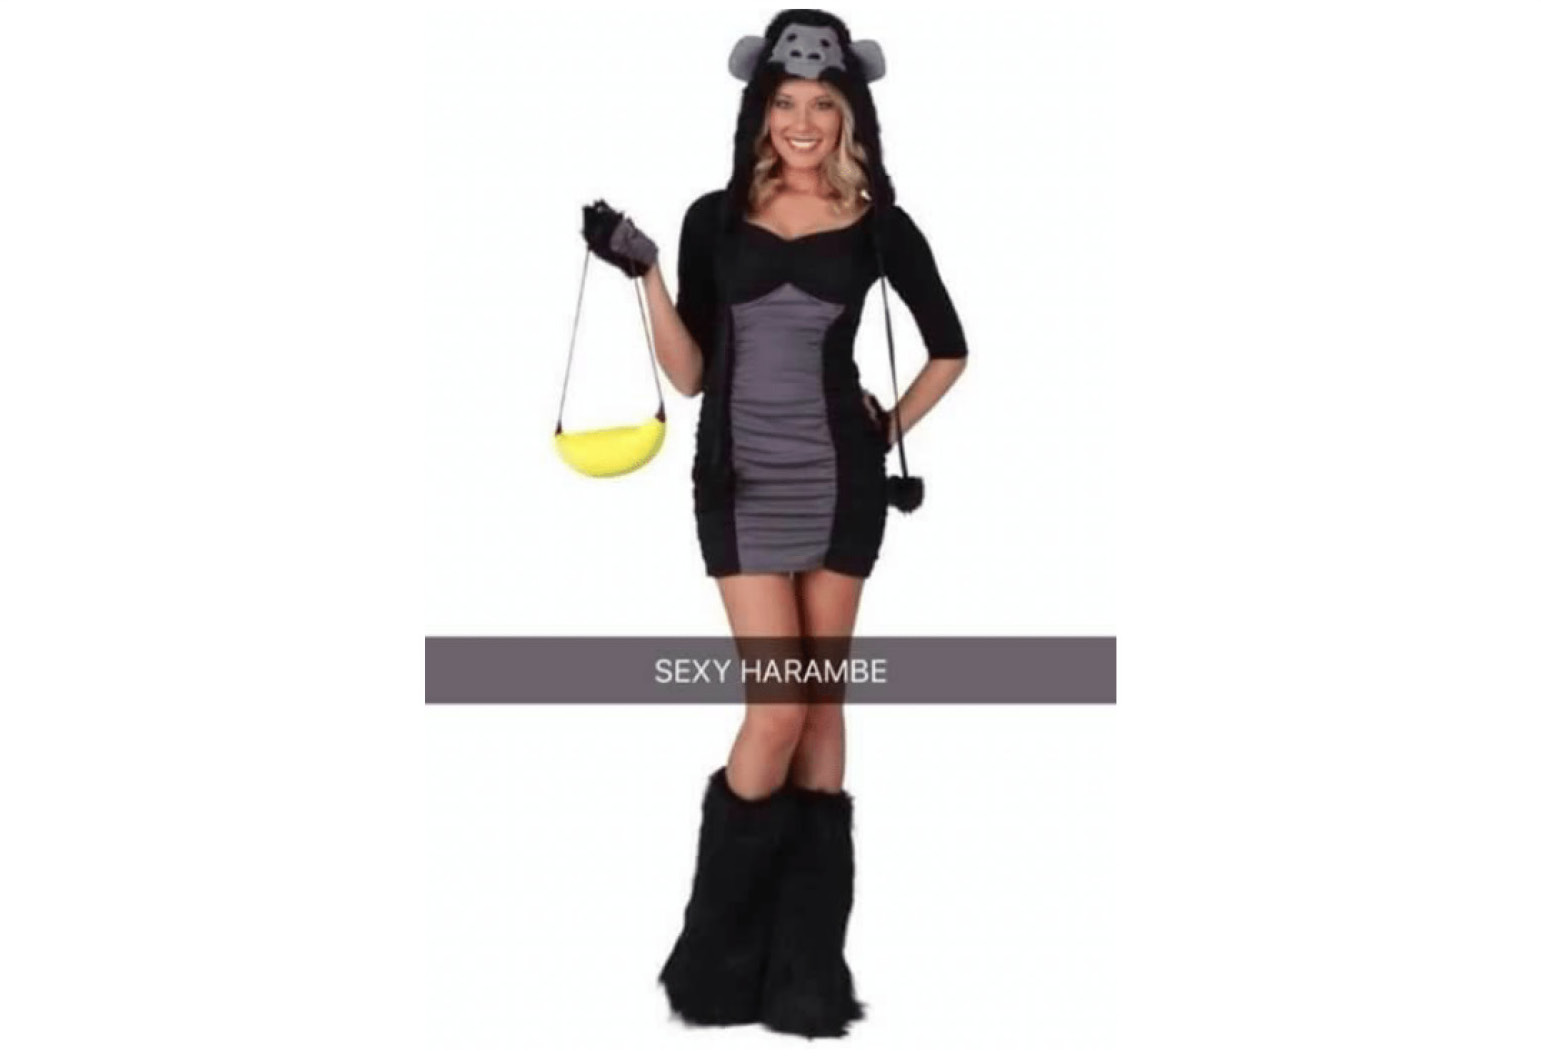 This Sexy Women's Harambe Outfit Is The Most Offensive Halloween ...